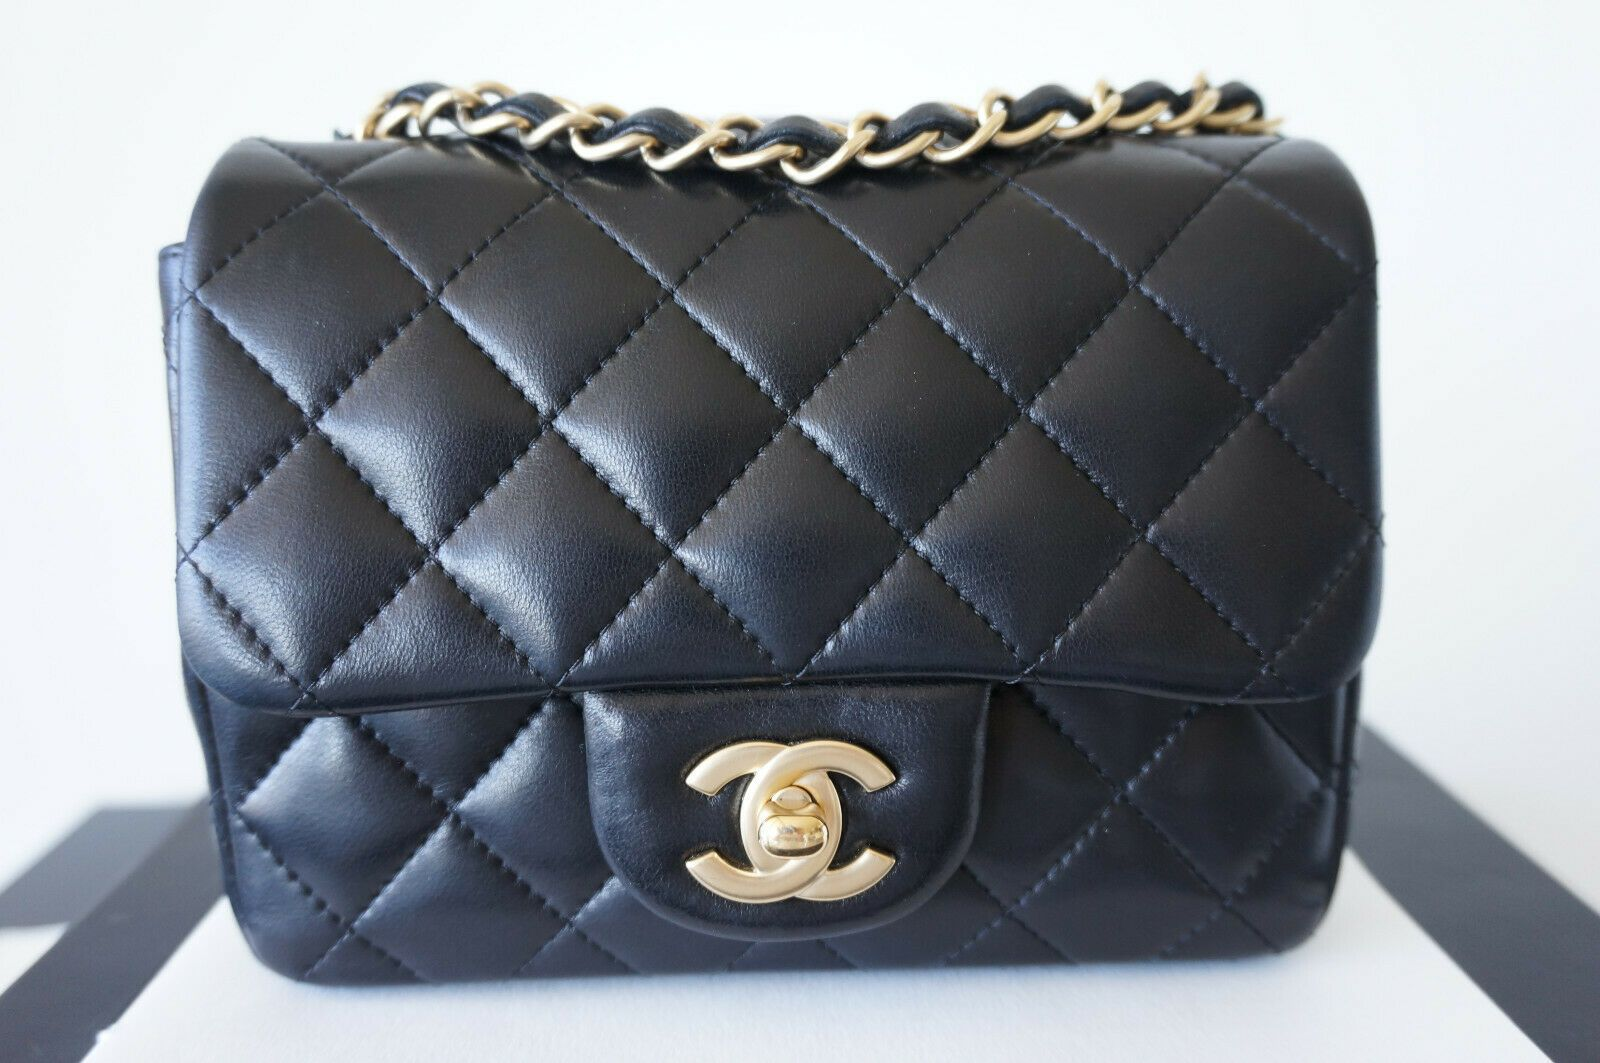 CHANEL 100% Auth. Black Lambskin Quilted Mini Square Flap Bag w Matte Gold  HW fa483aeefd4cc